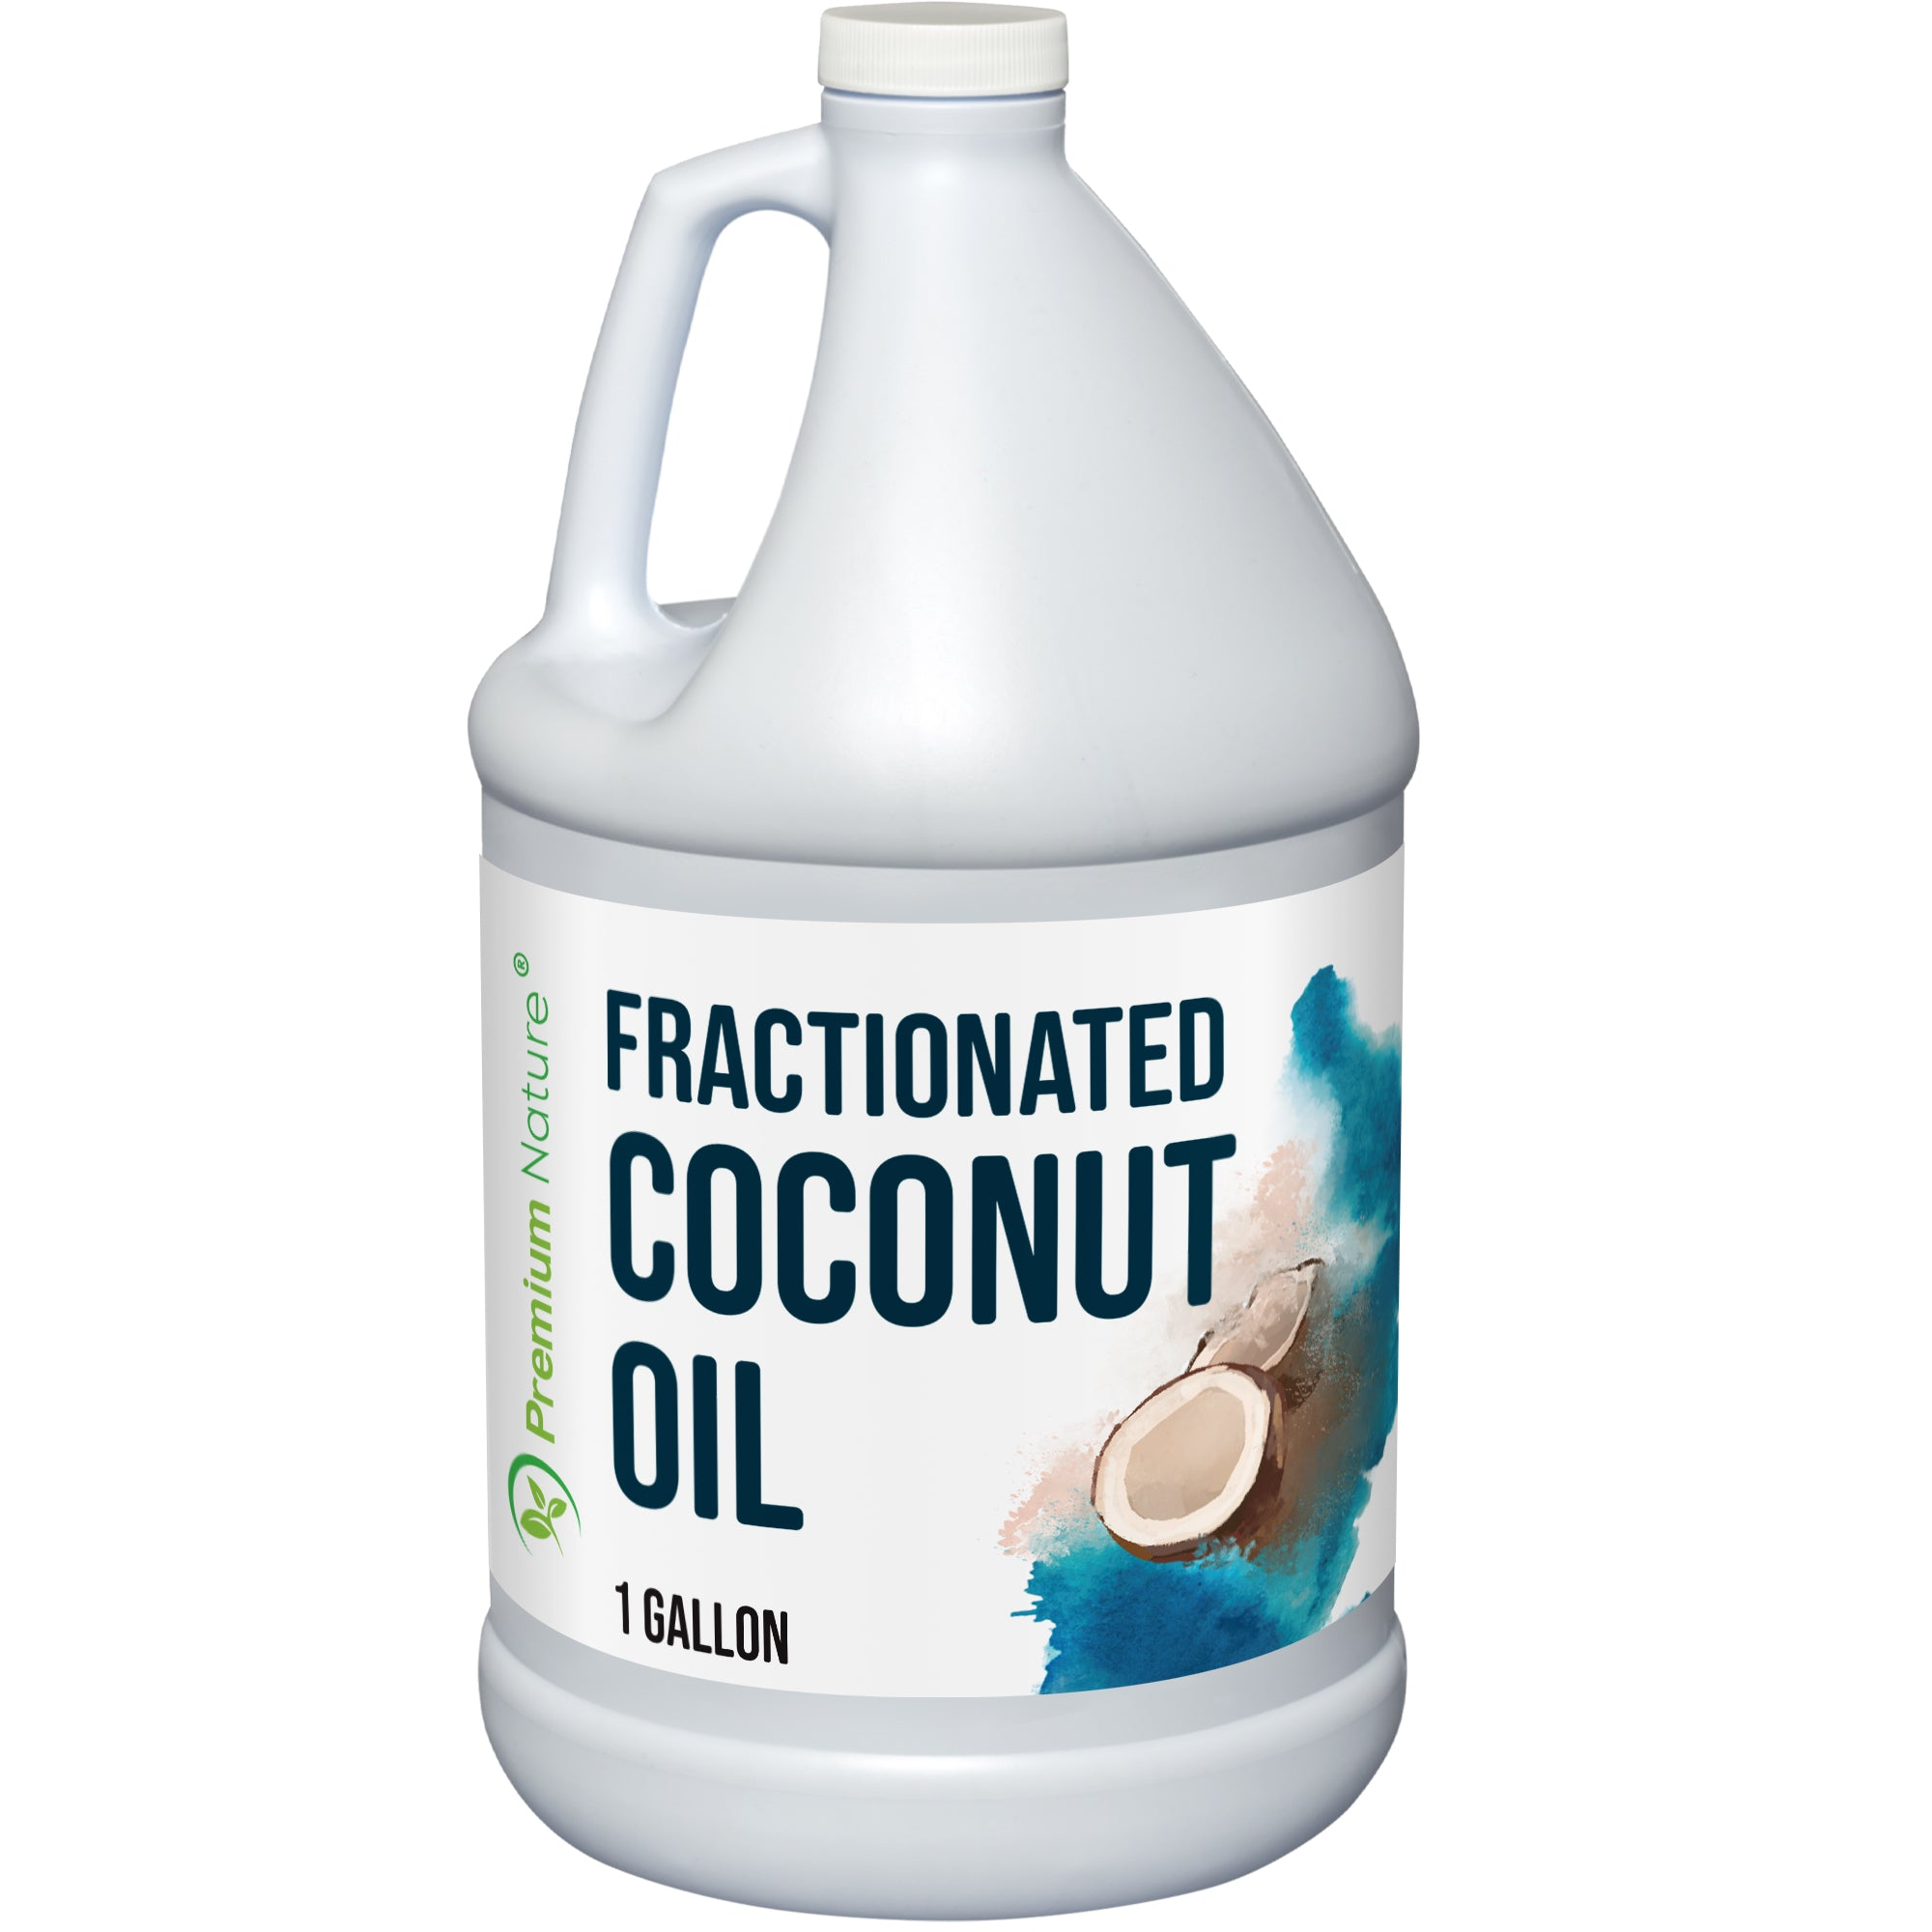 Fractionated Coconut Oil, 1 Gallon